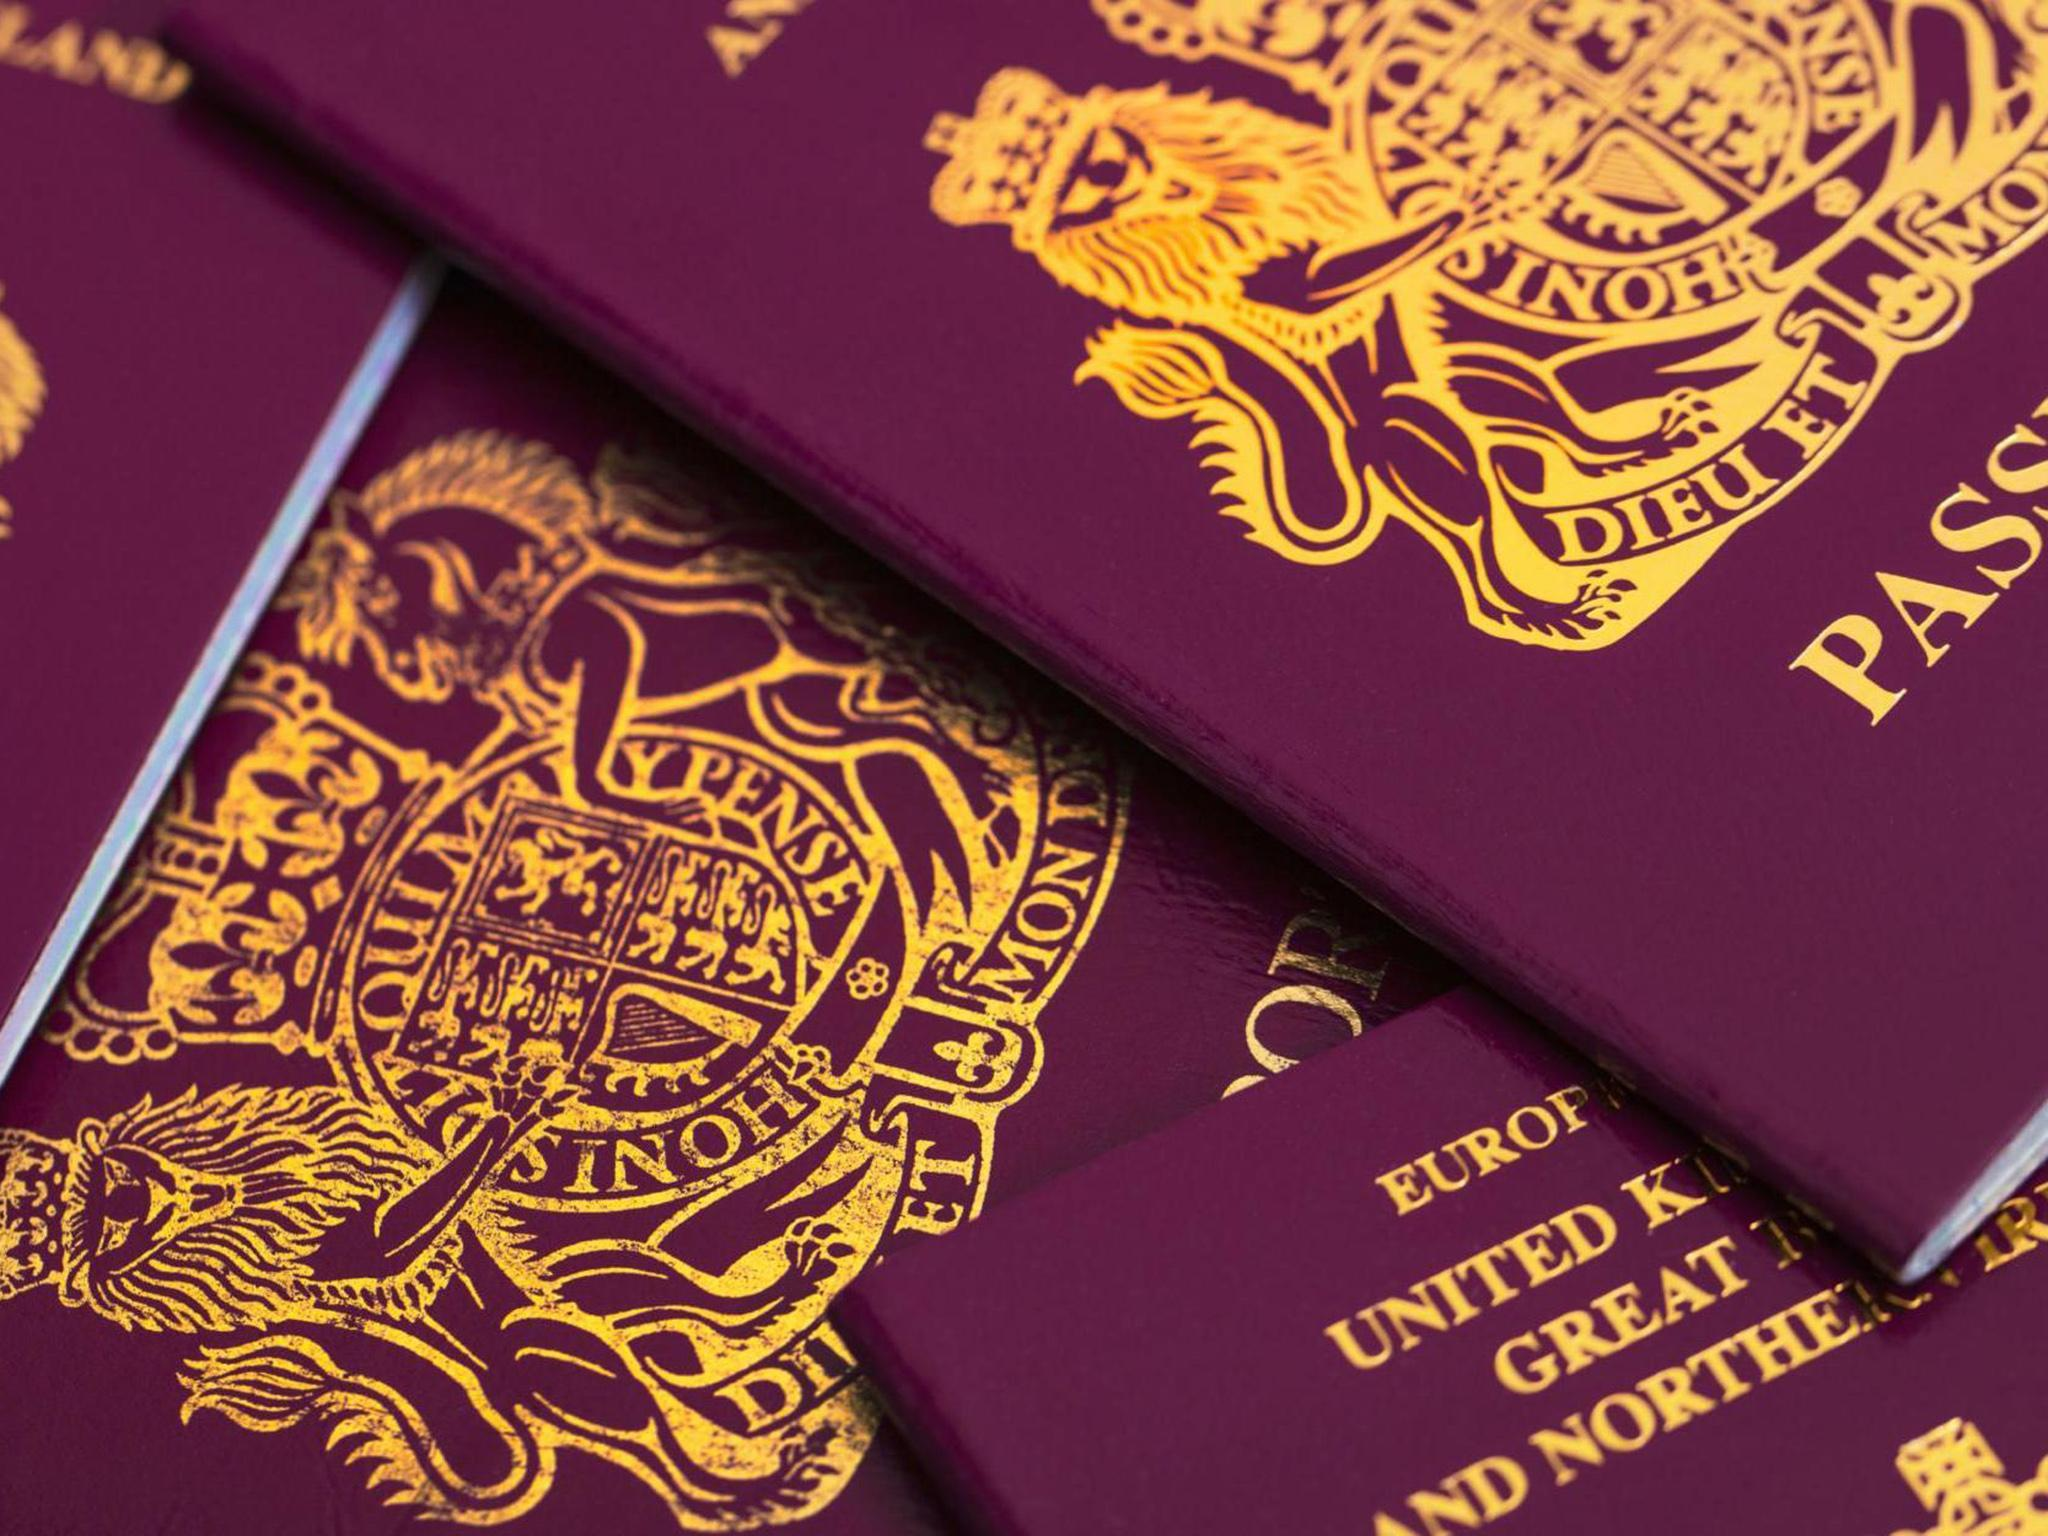 The countries you can buy citizenship for if you want to emigrate